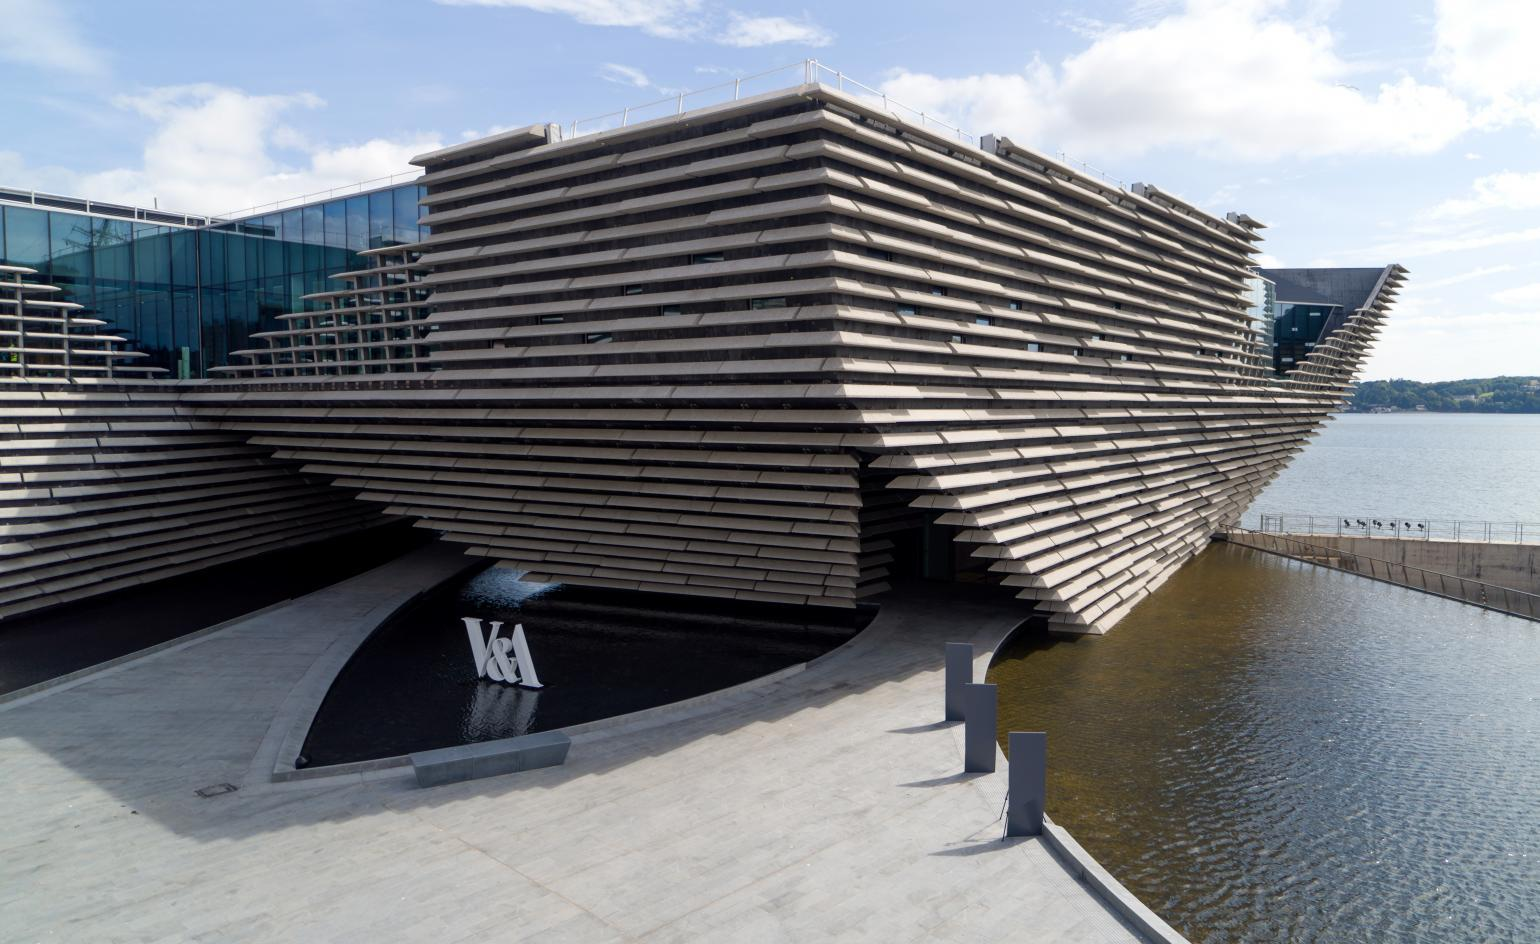 The Kengo Kuma-designed V&A Museum of Design Dundee, Scotland's first dedicated design museum, is set to open its doors in less than a month / Rapid Visual Media